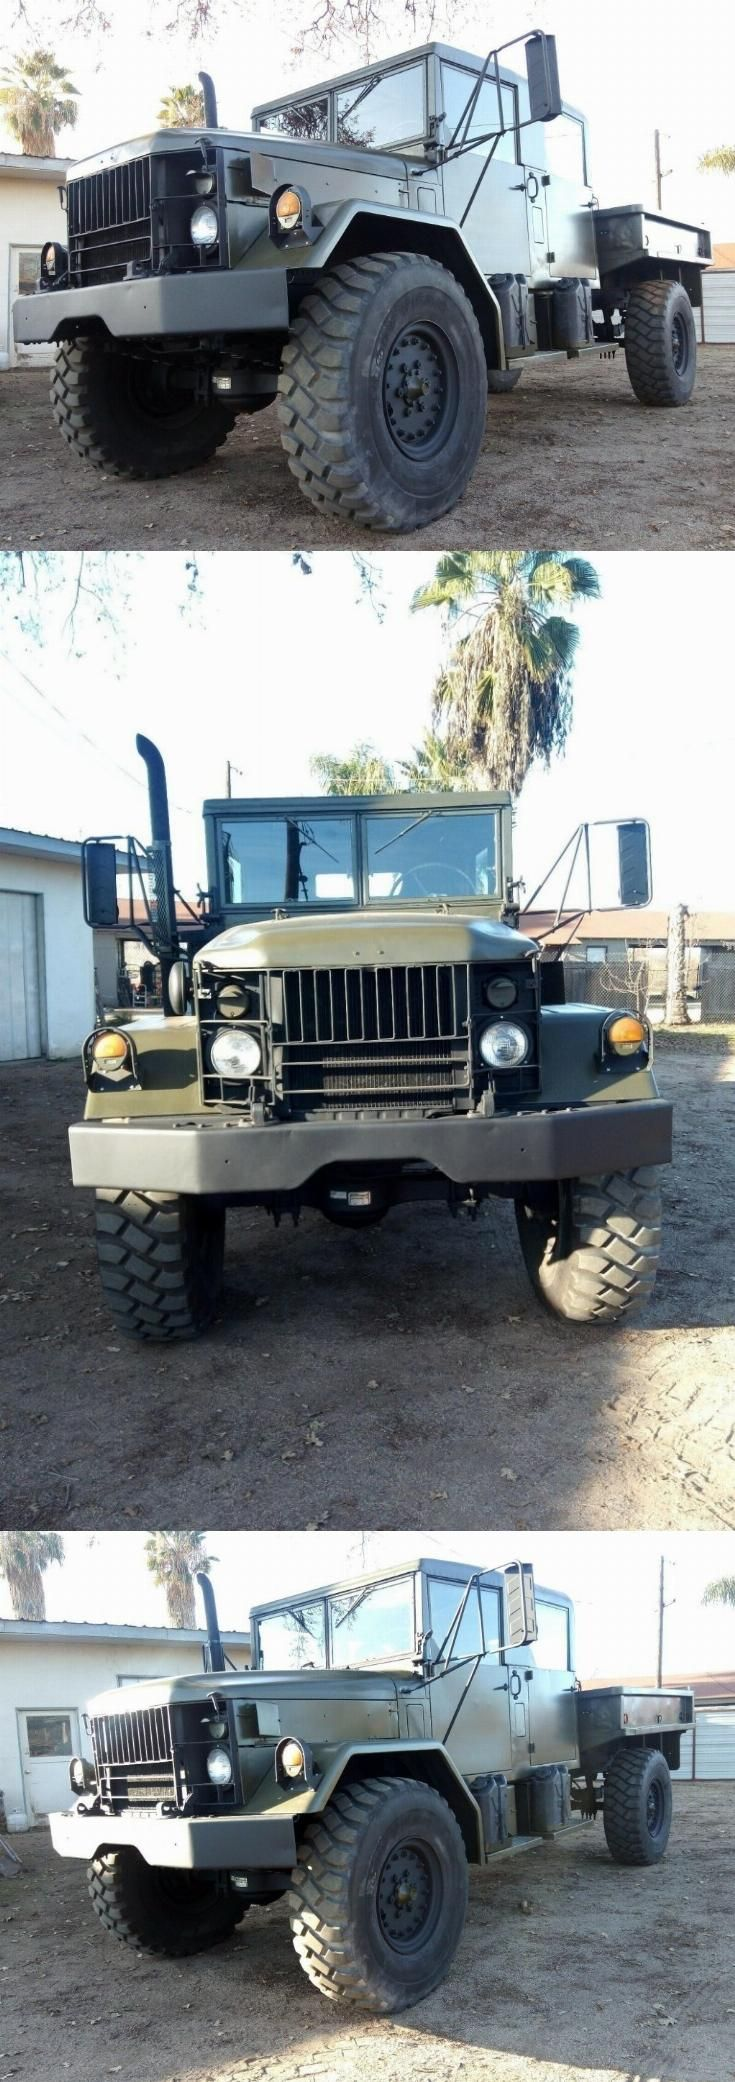 Jeep Kaiser M35a2 Multifuel Jeep, Truck bed liner